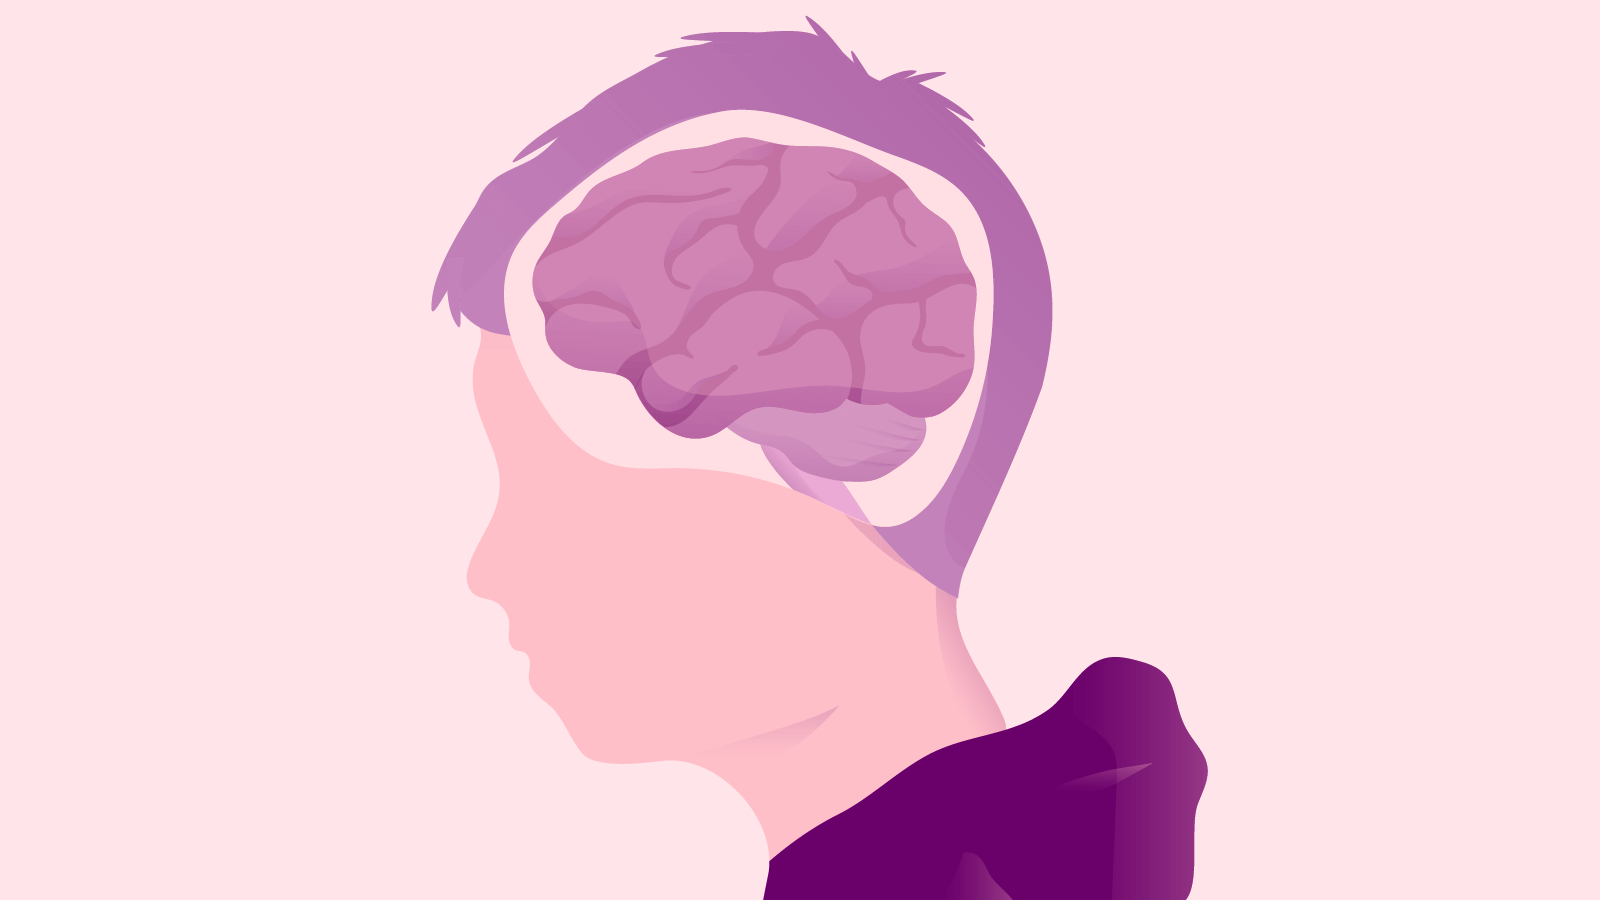 Illustration of a young boy's head and a simplified version of his brain